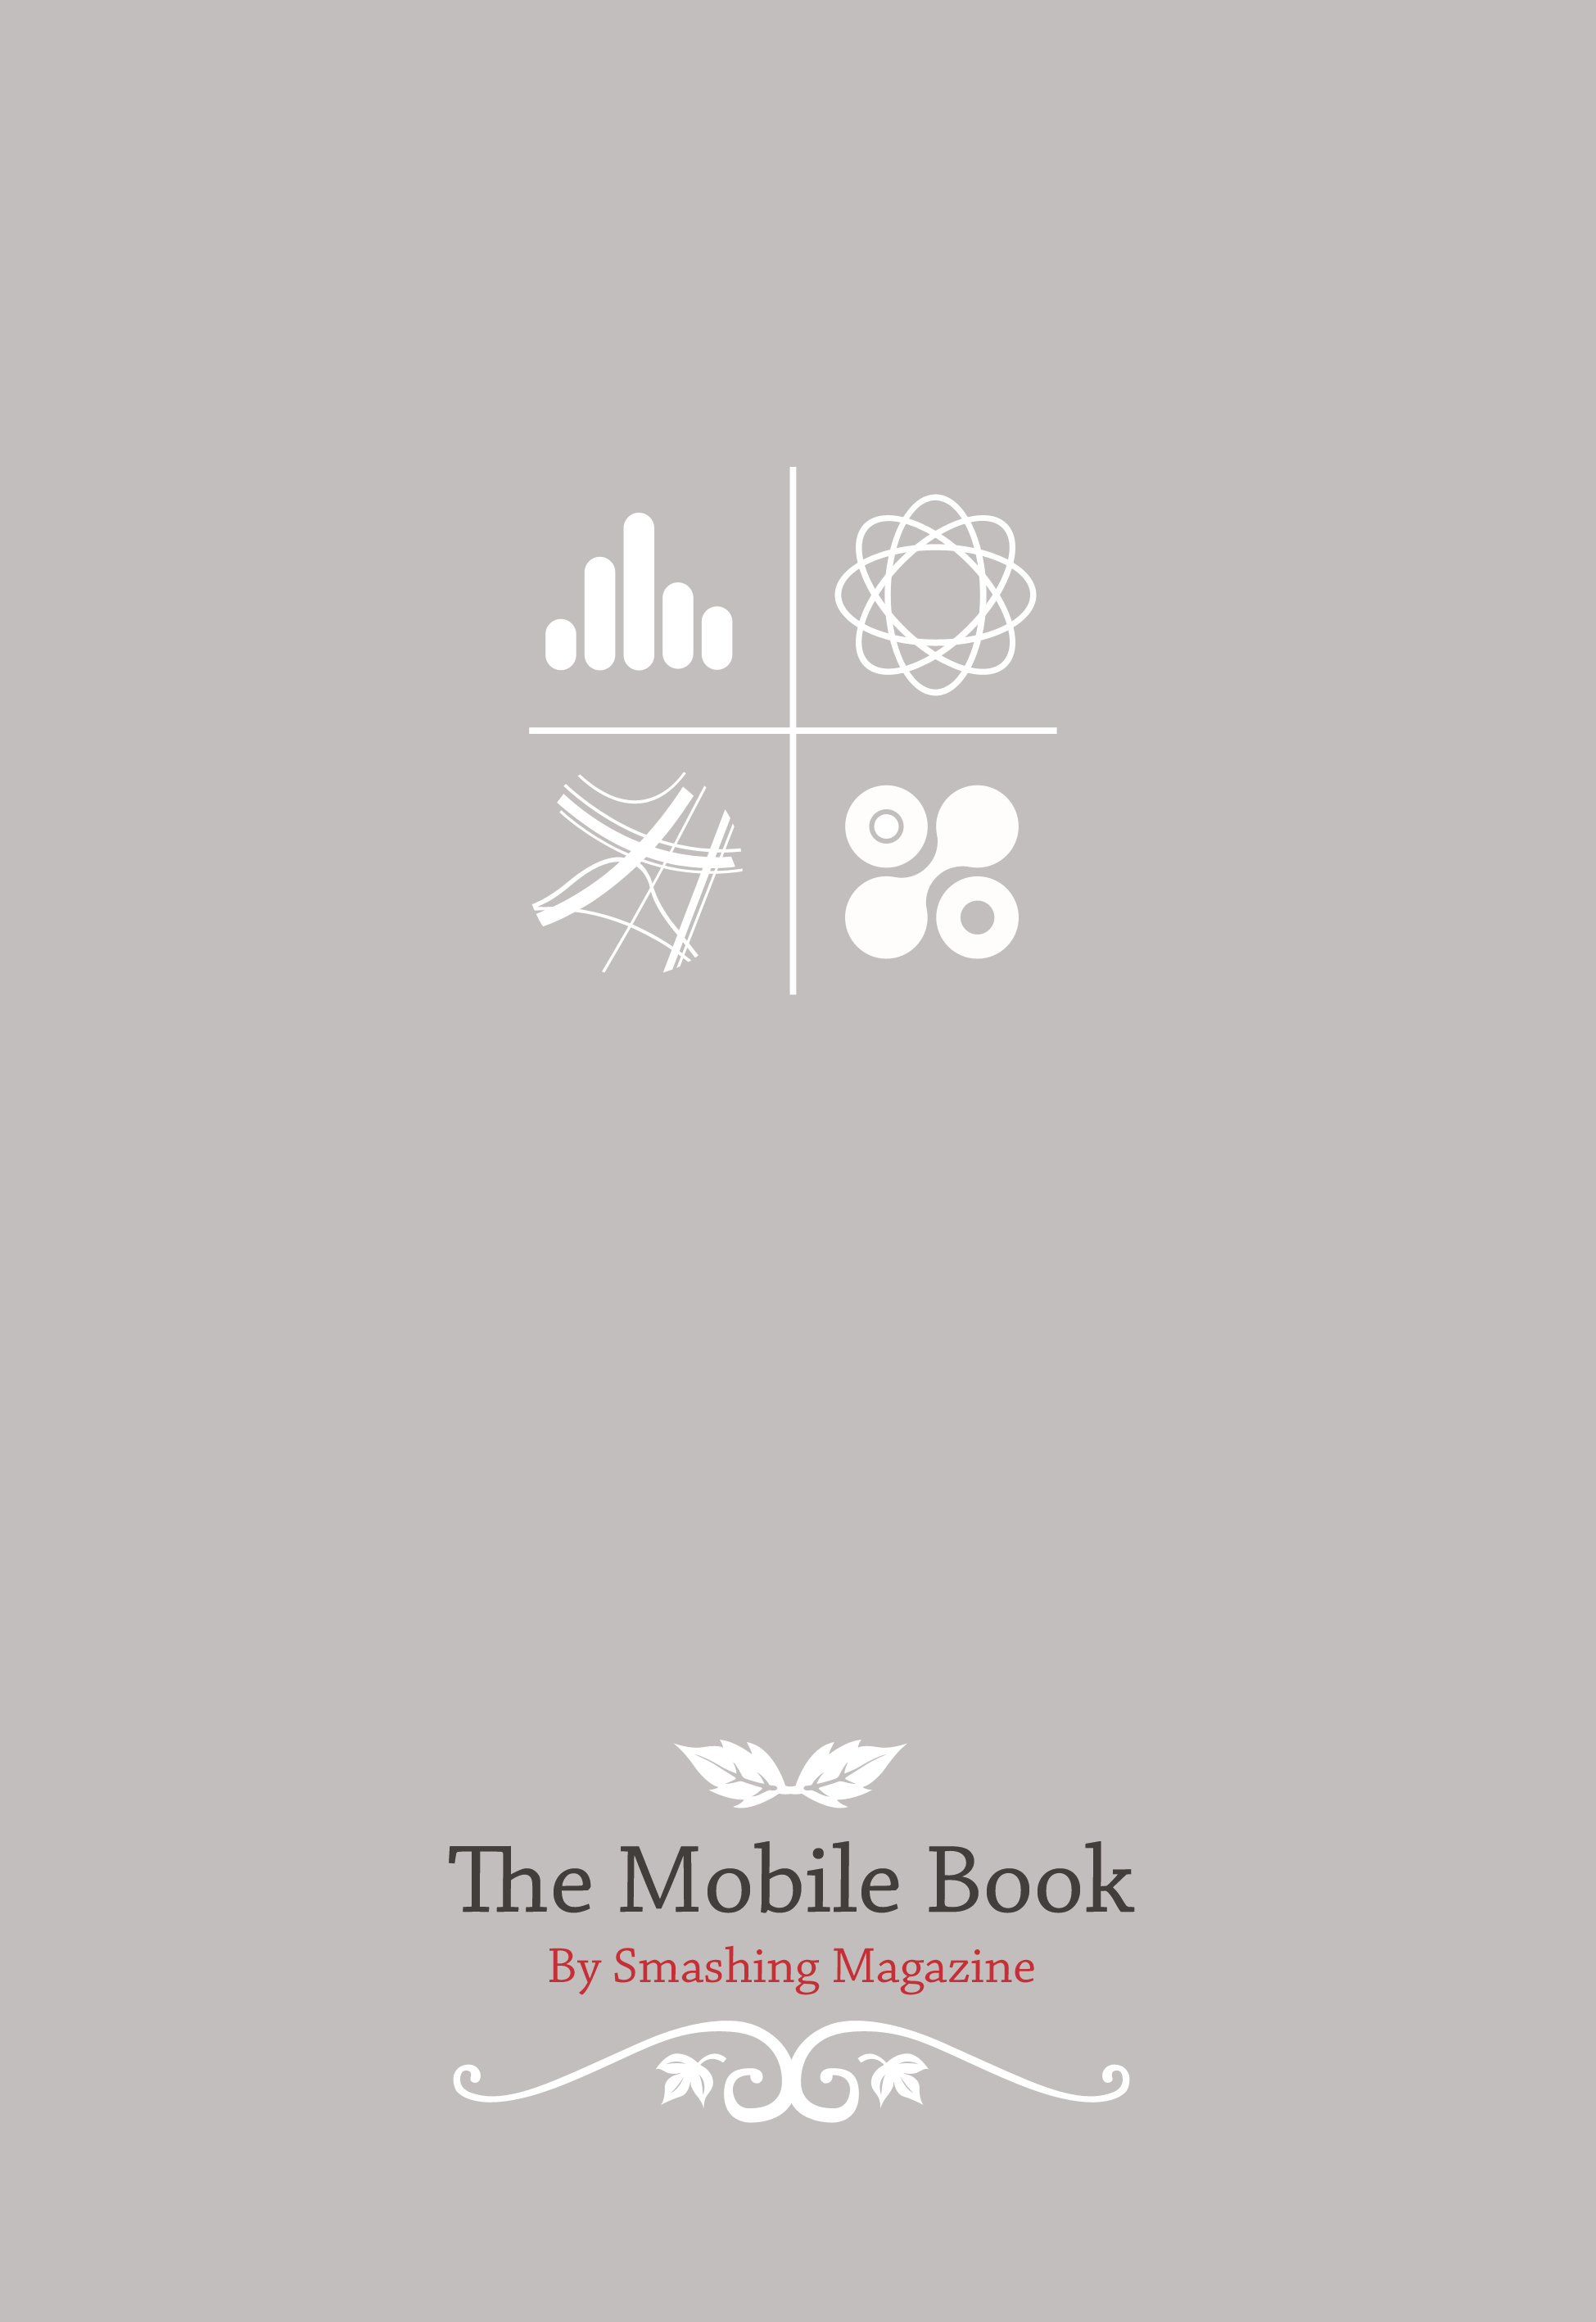 The Mobile Book By: Smashing Magazine